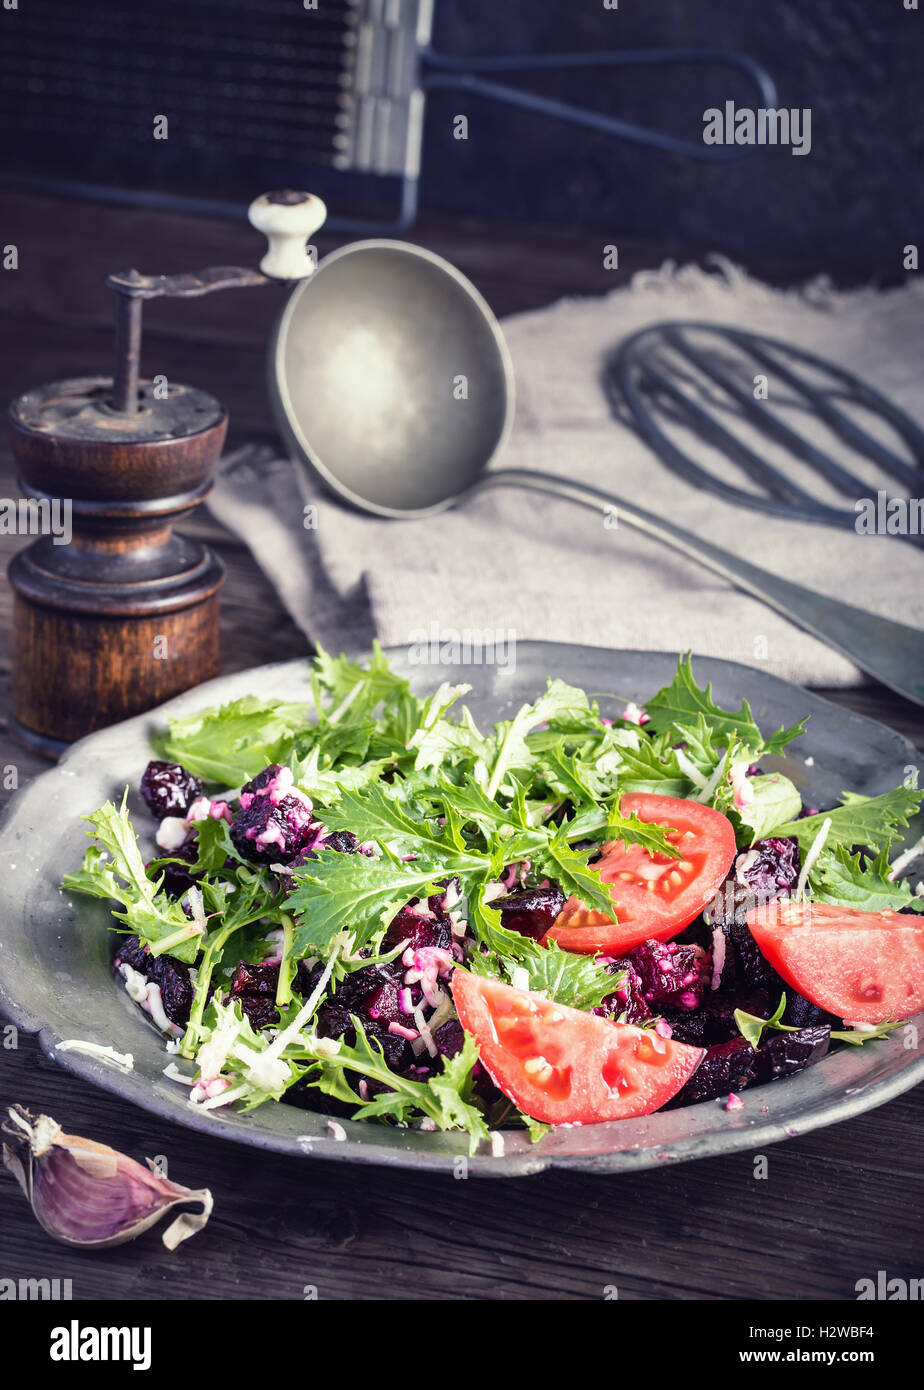 Beet and cheese salad on plate - Stock Image